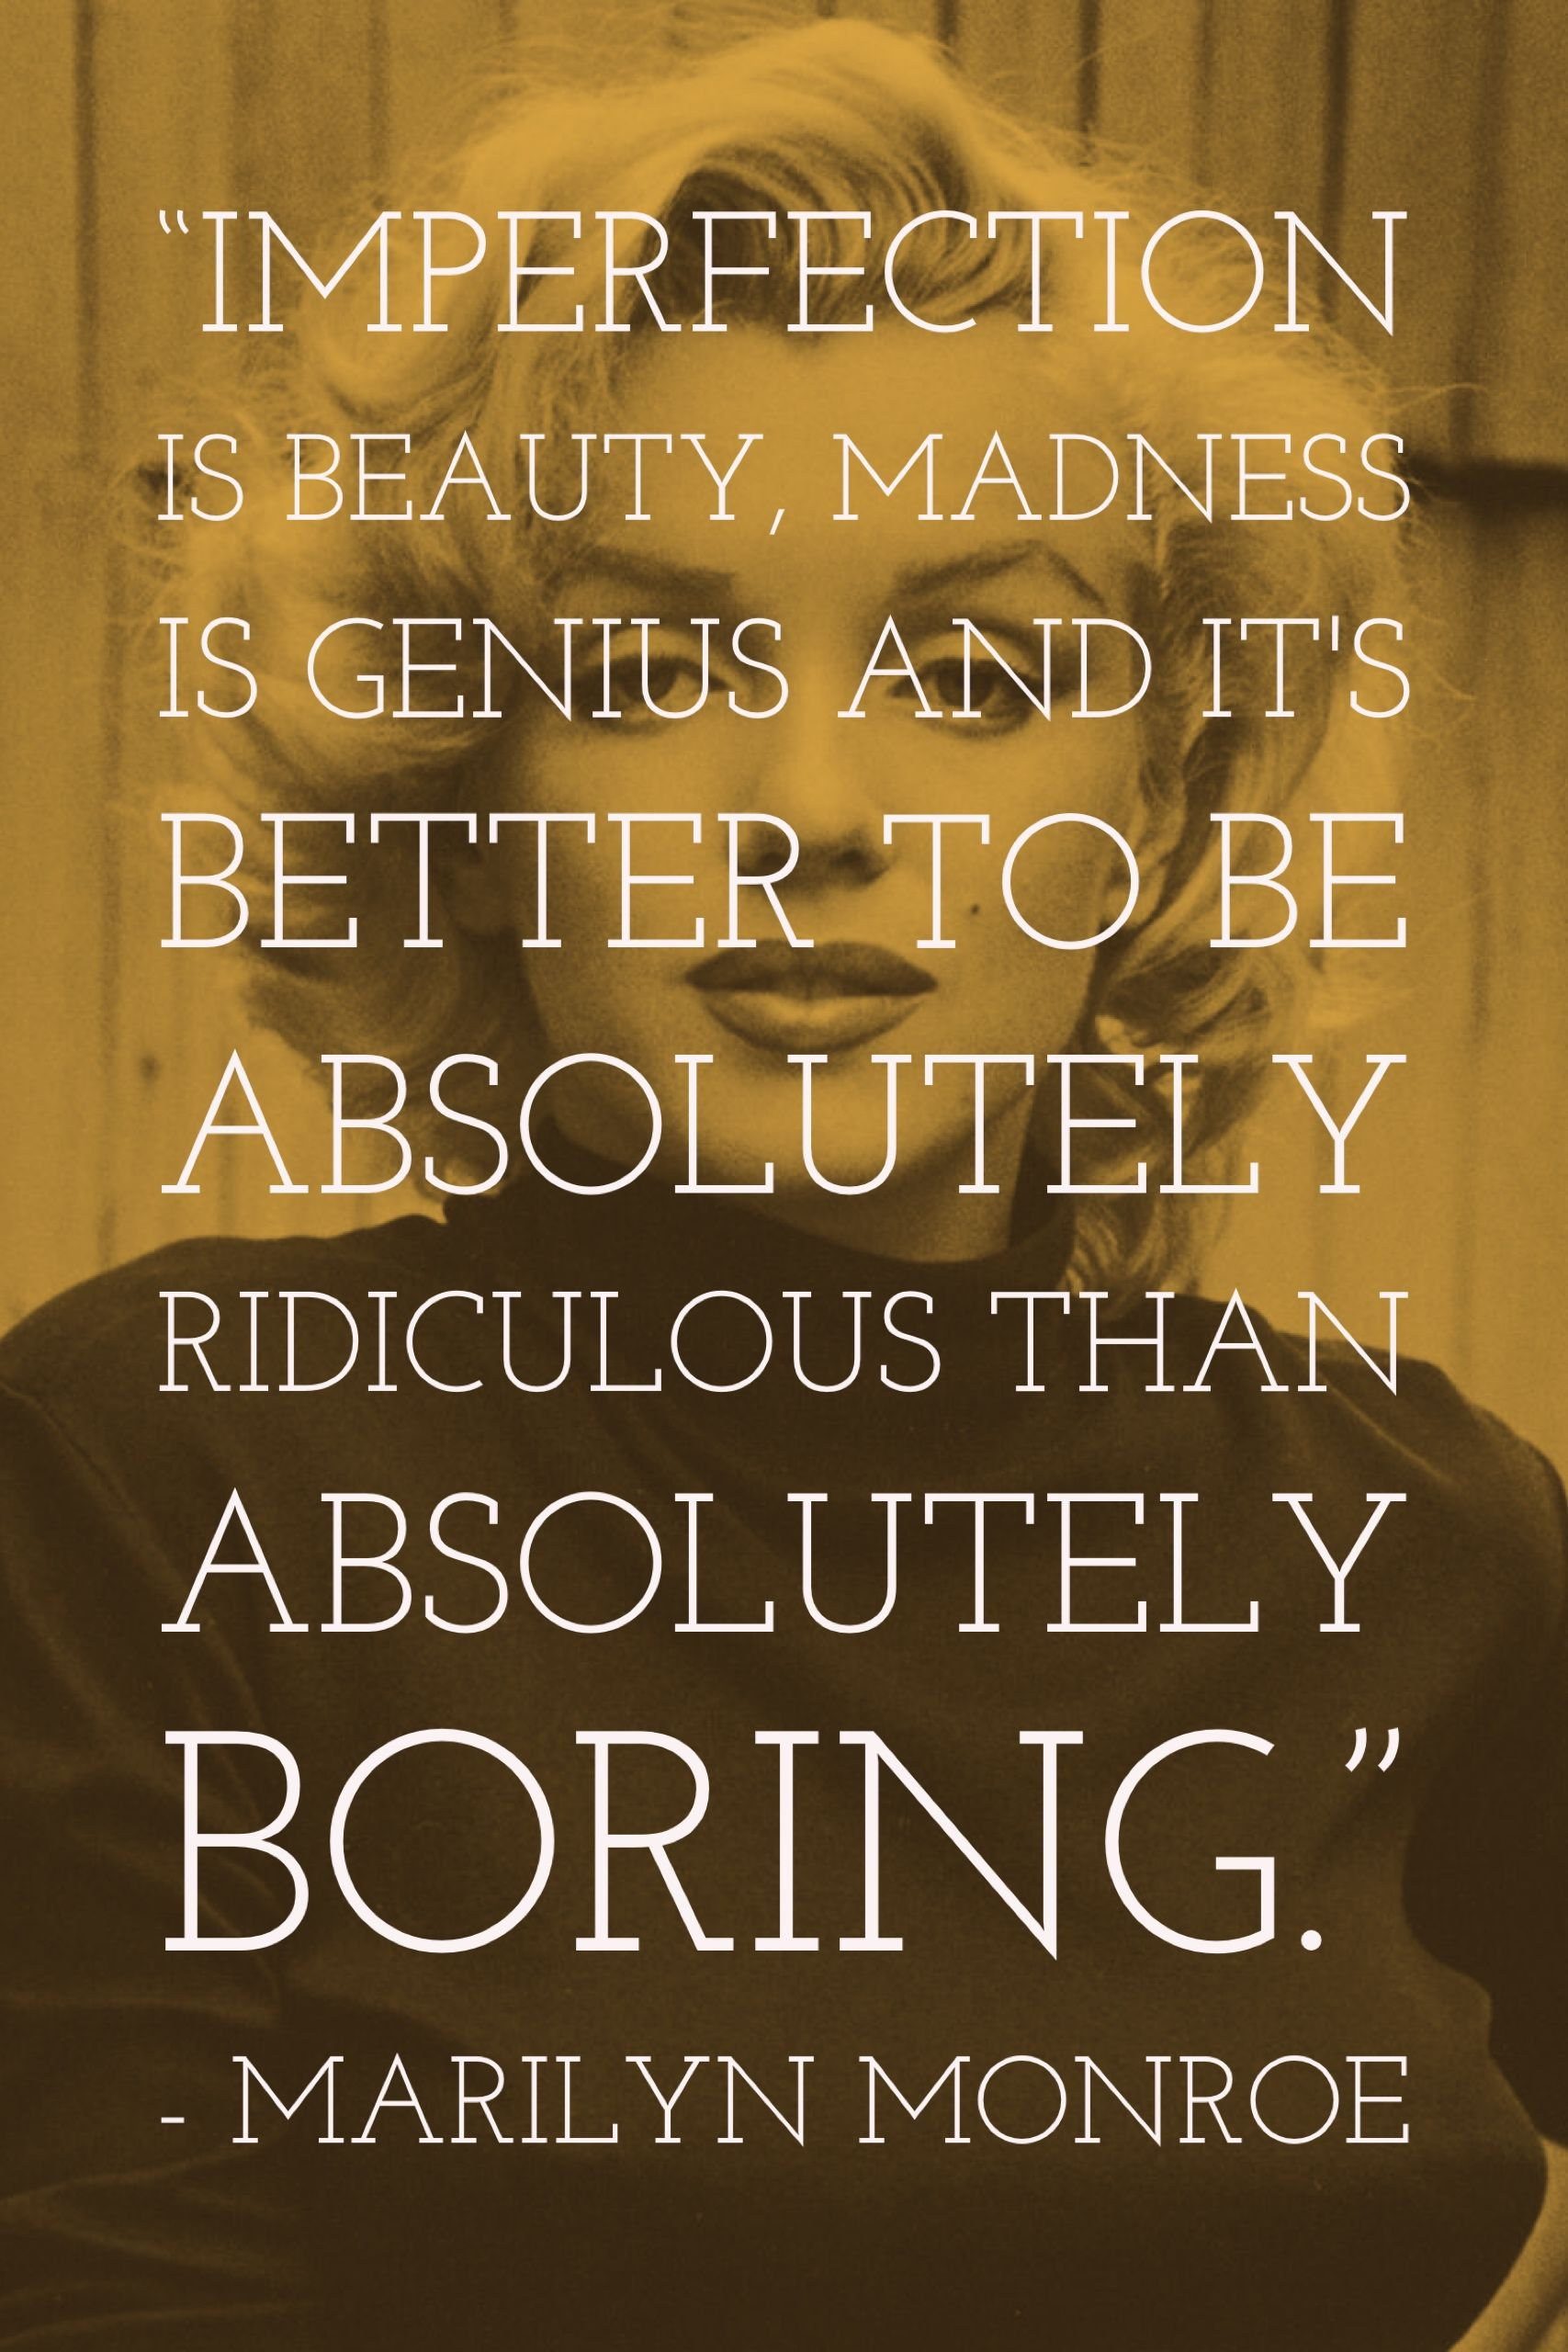 Totally agree to be ridiculous instead of boring | Quotes | Marilyn